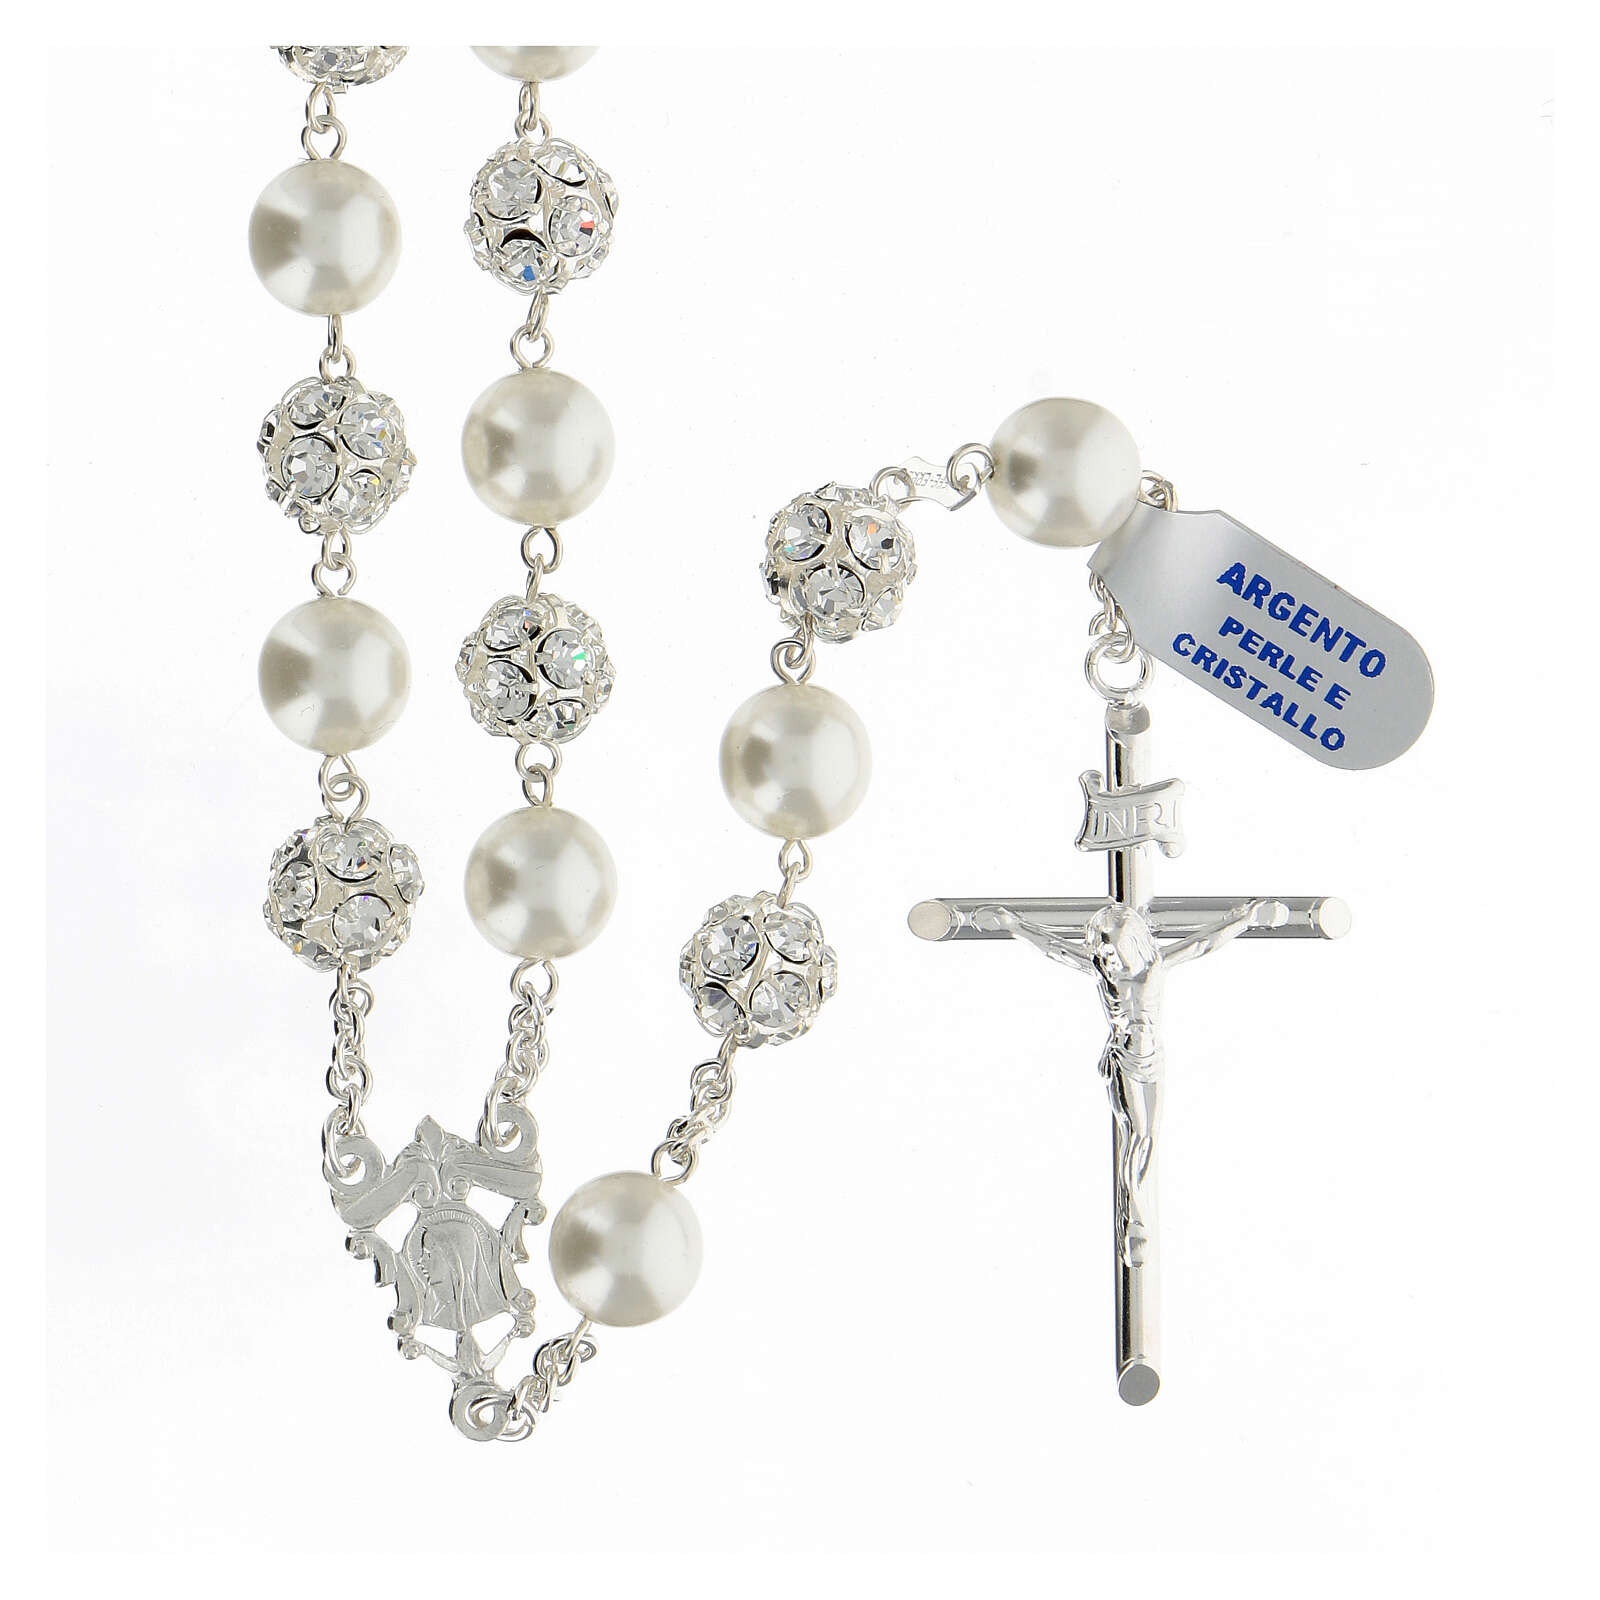 Chapelet argent 925 grains 10 mm perles cristaux blancs crucifix 4